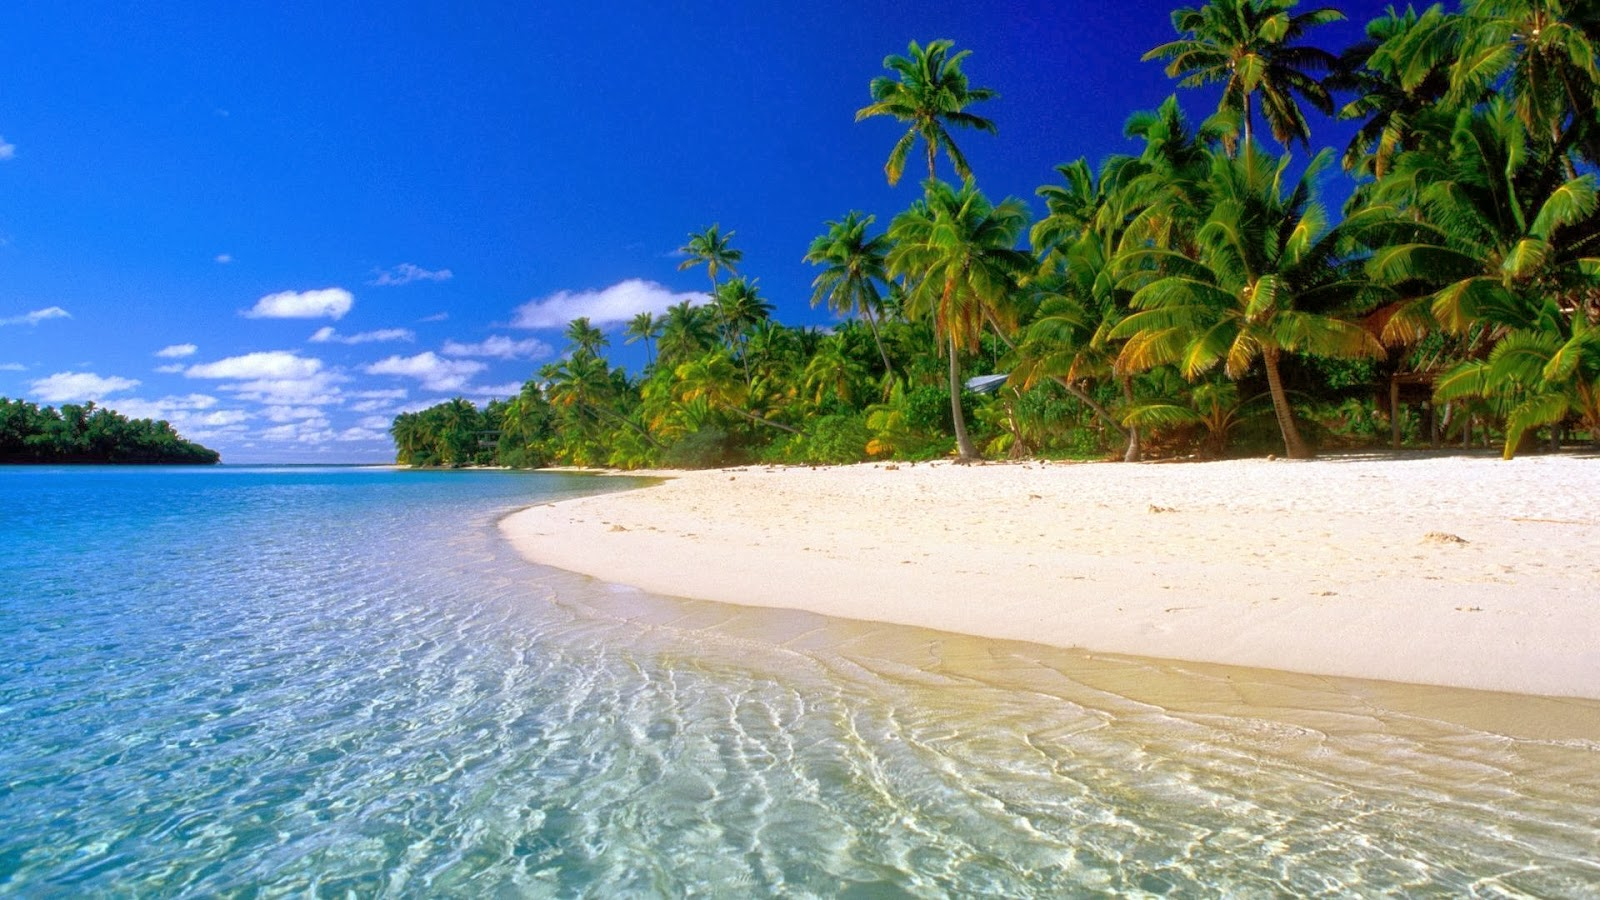 Beautiful-Dream-Beach Beautiful Nature Images And Wallpaper